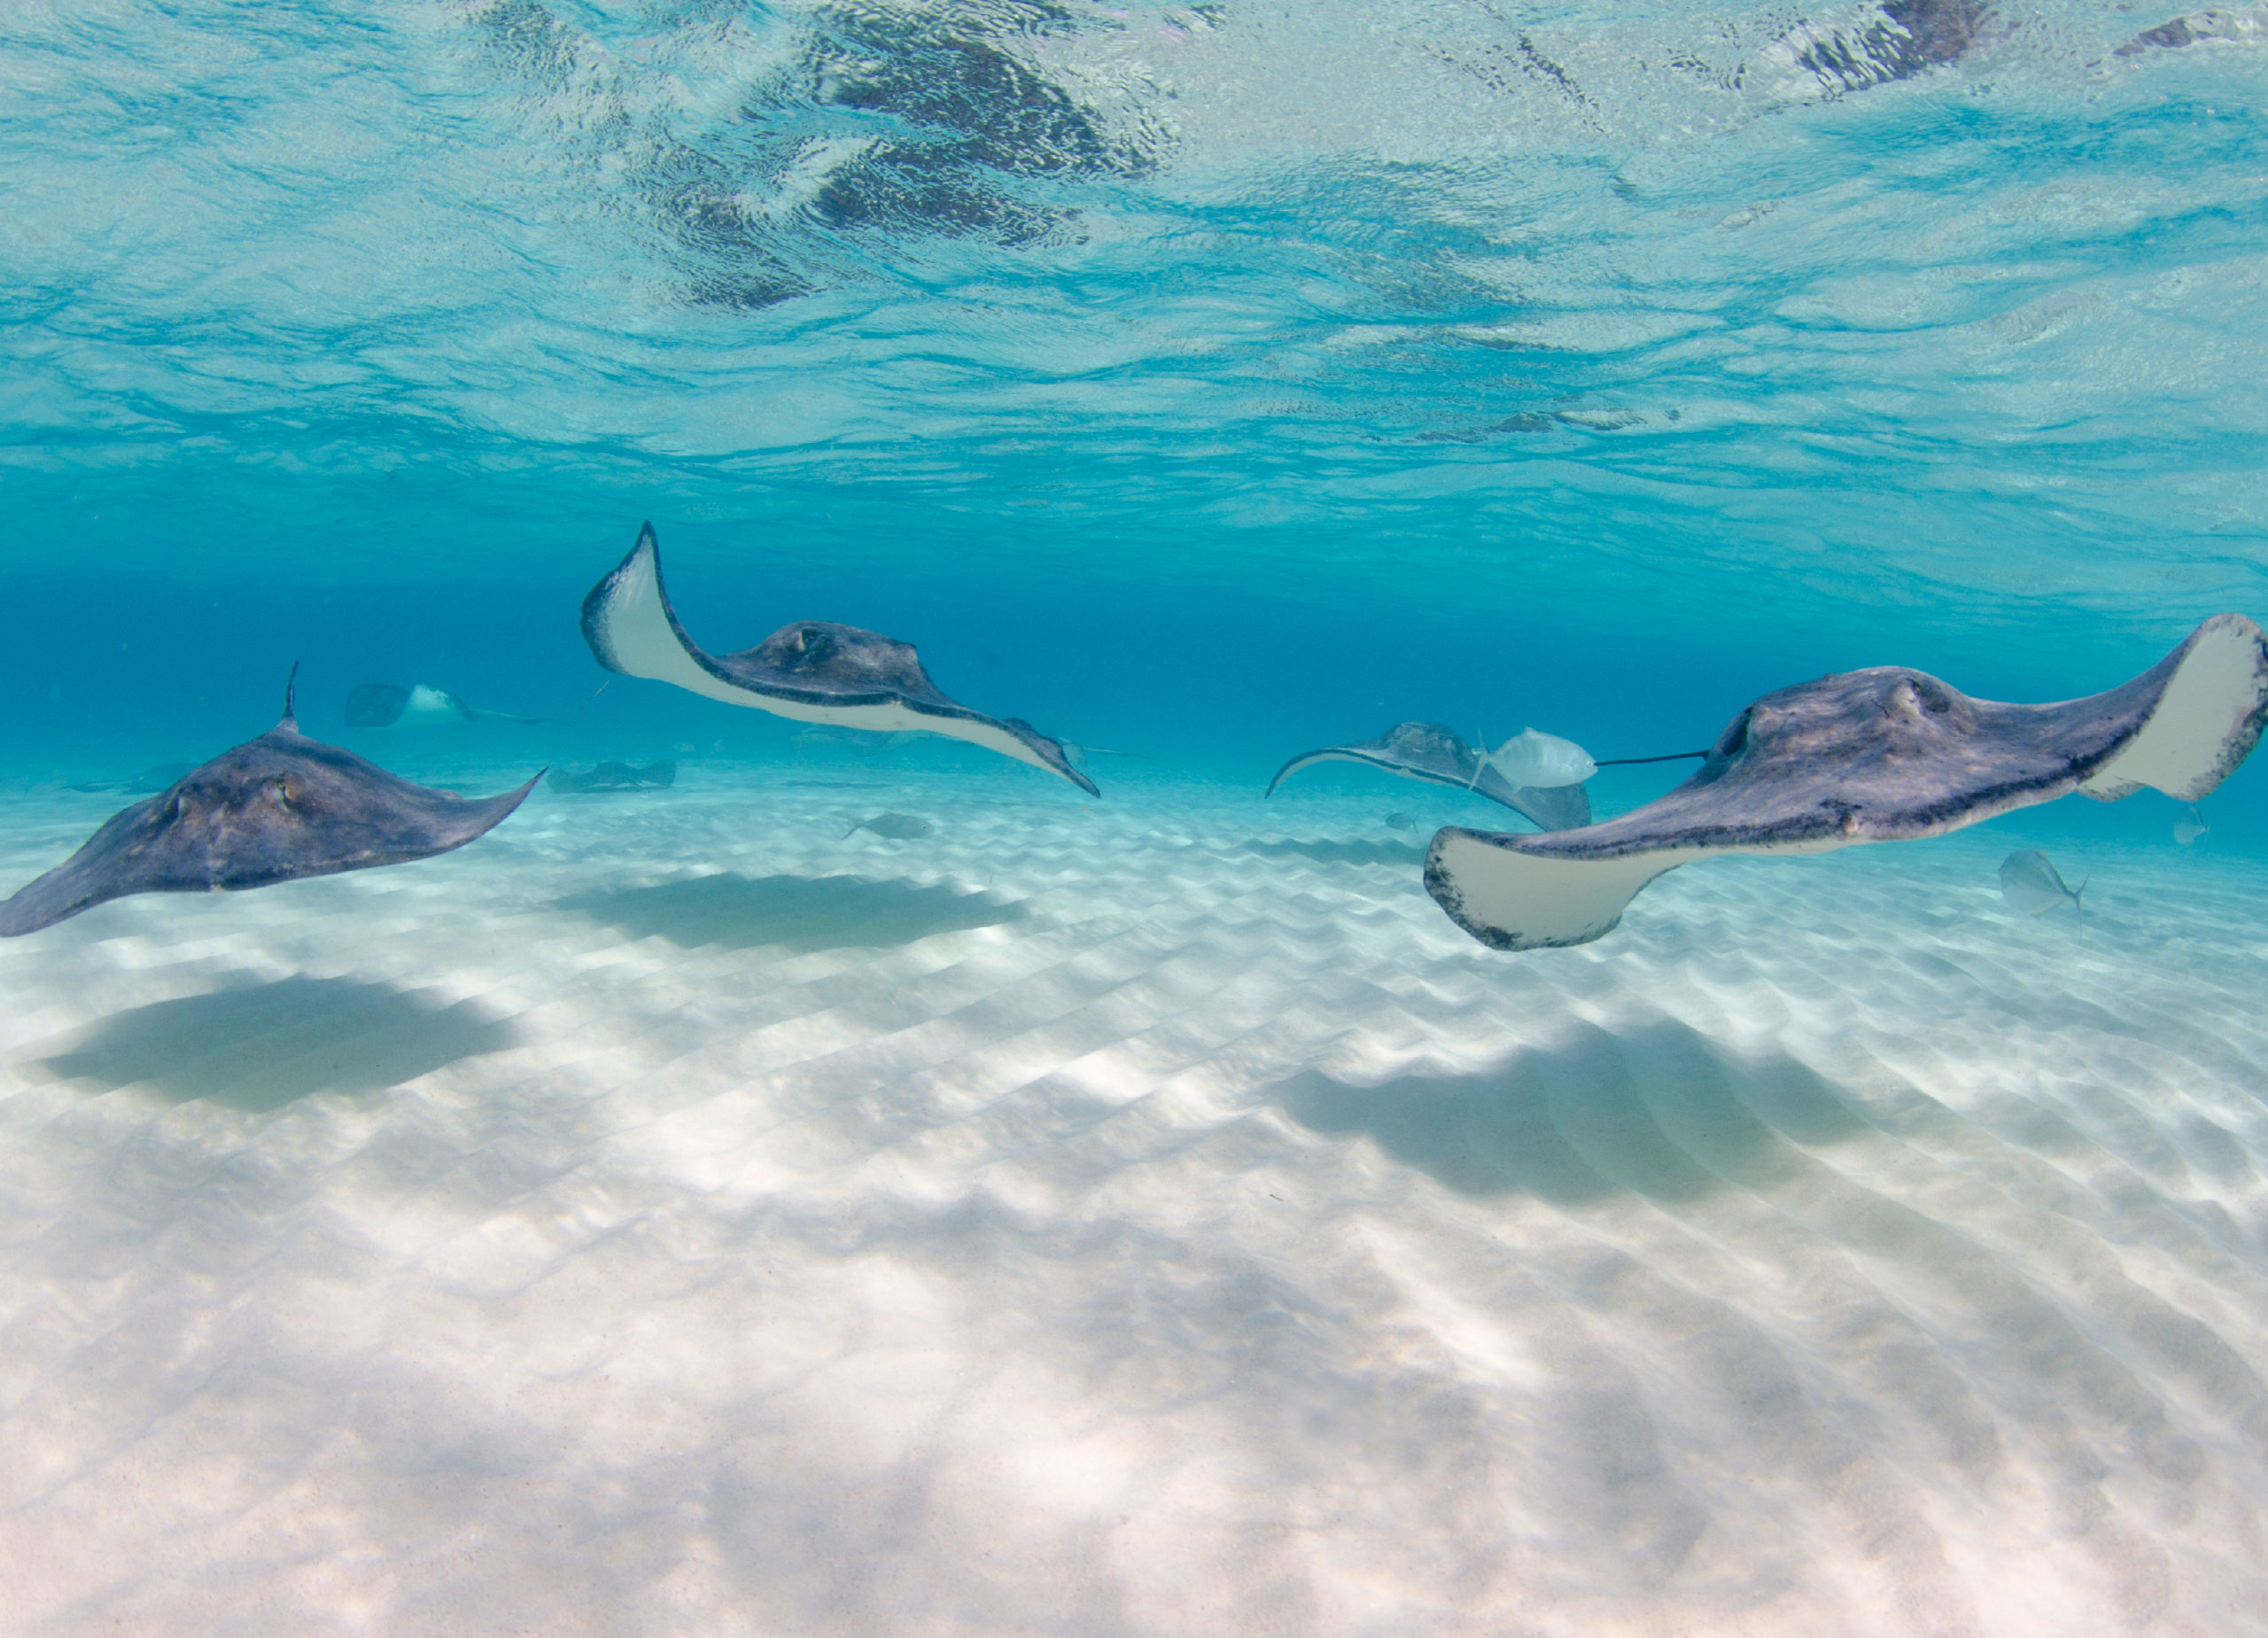 A group of stingrays swimming near the ocean floor.